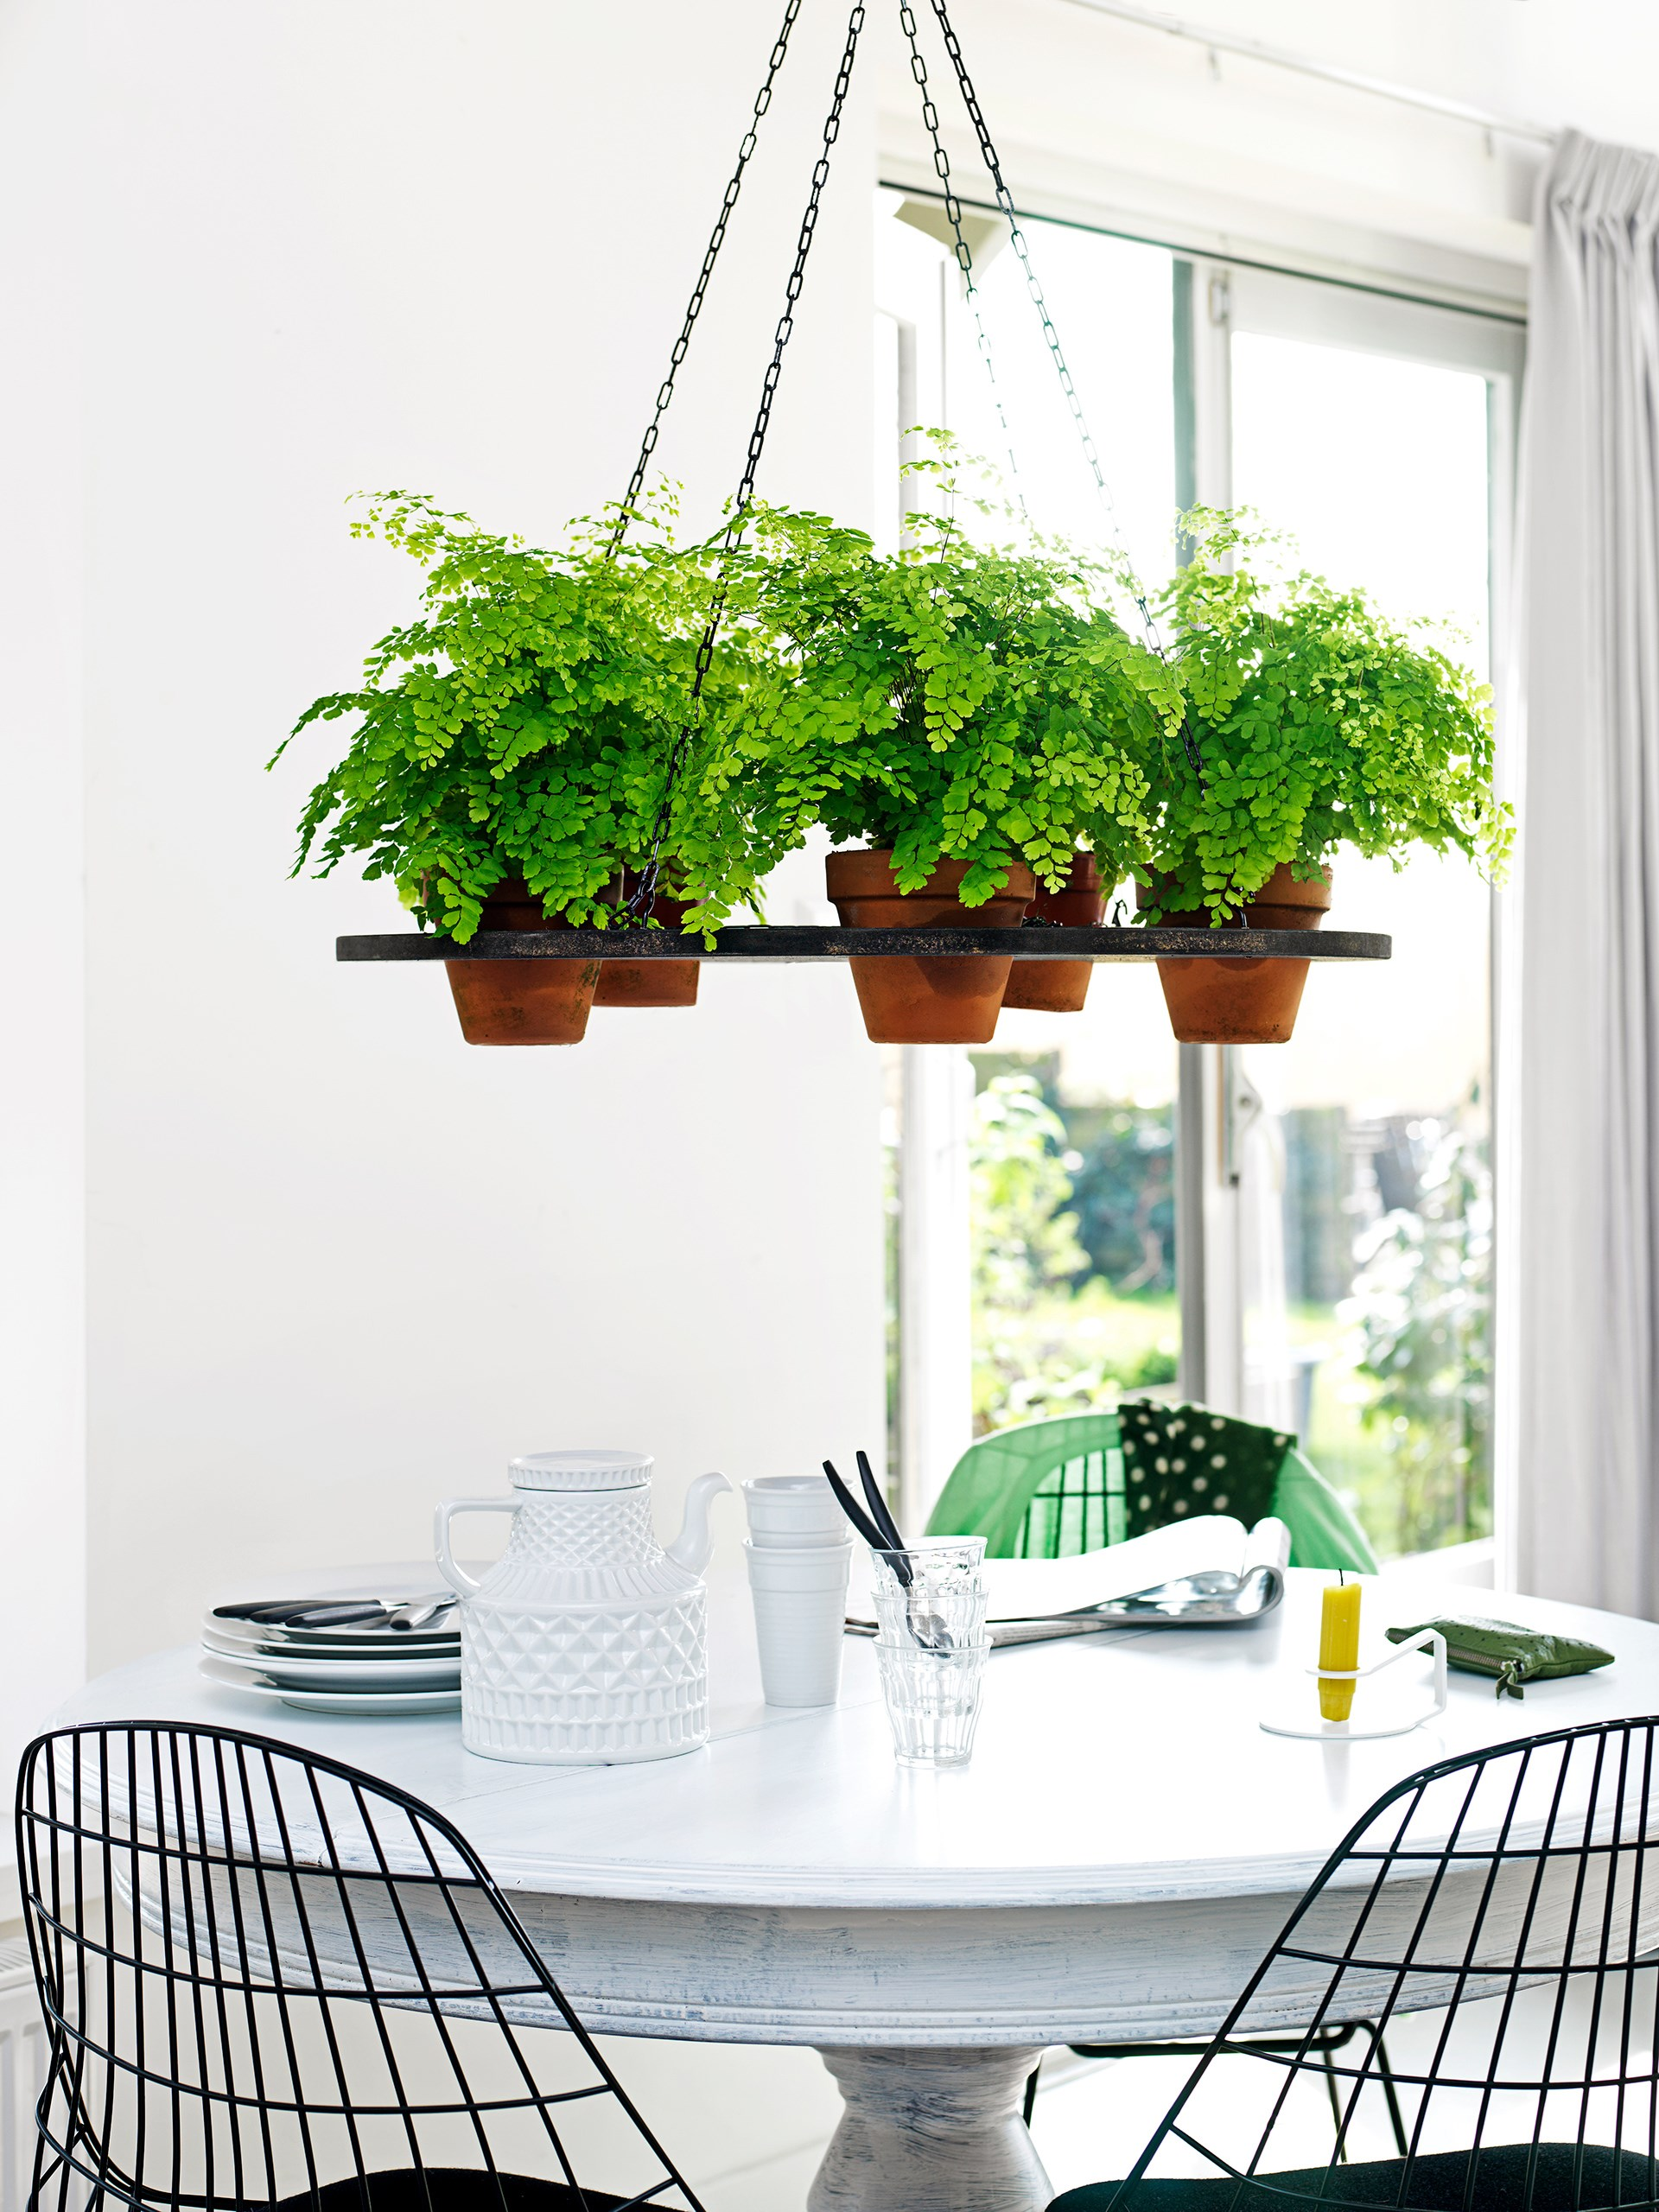 Bring your meeting table to life with some hanging greenery! Photo: Louis Lemaire / insidehomepage.com